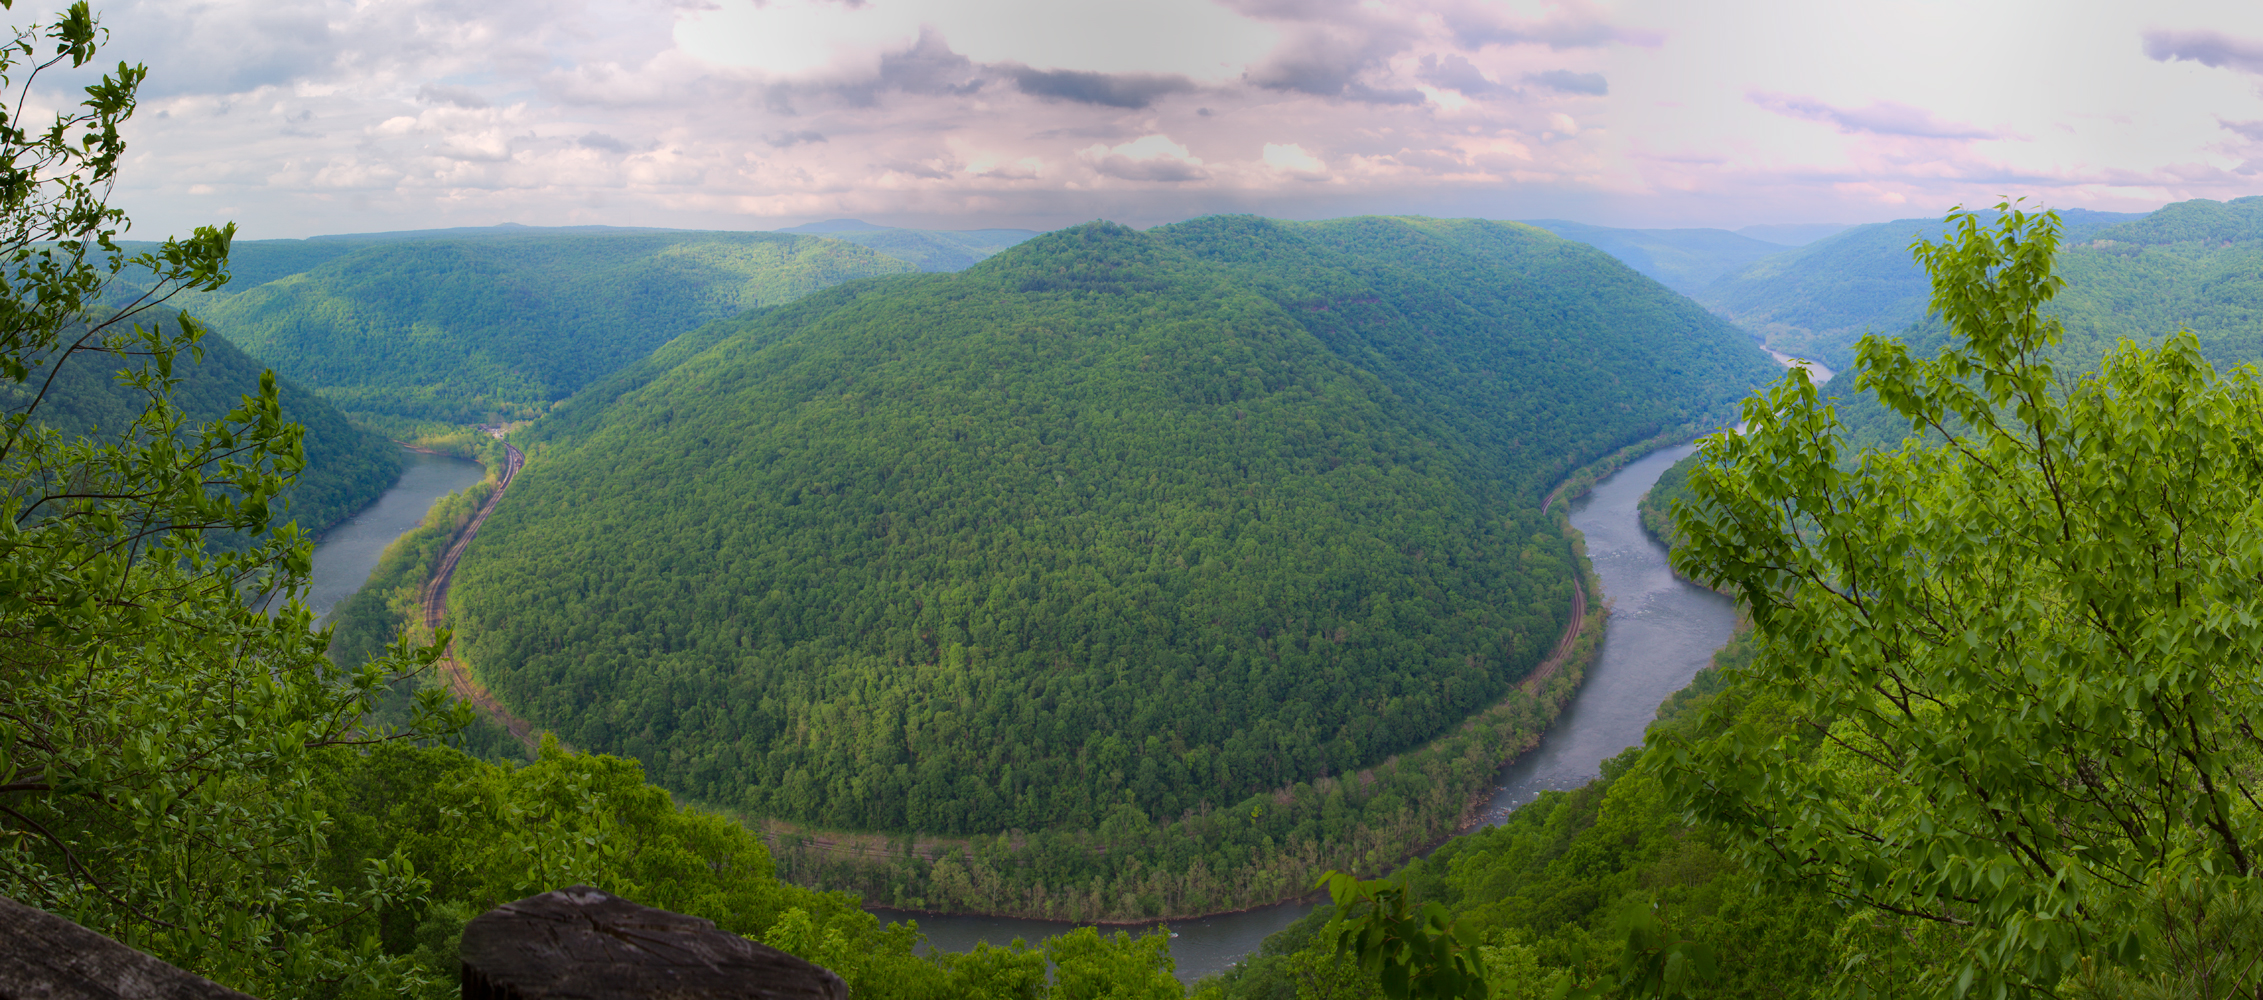 View from the North Overlook at the Grandview area of New River Gorge. (Courtesy)